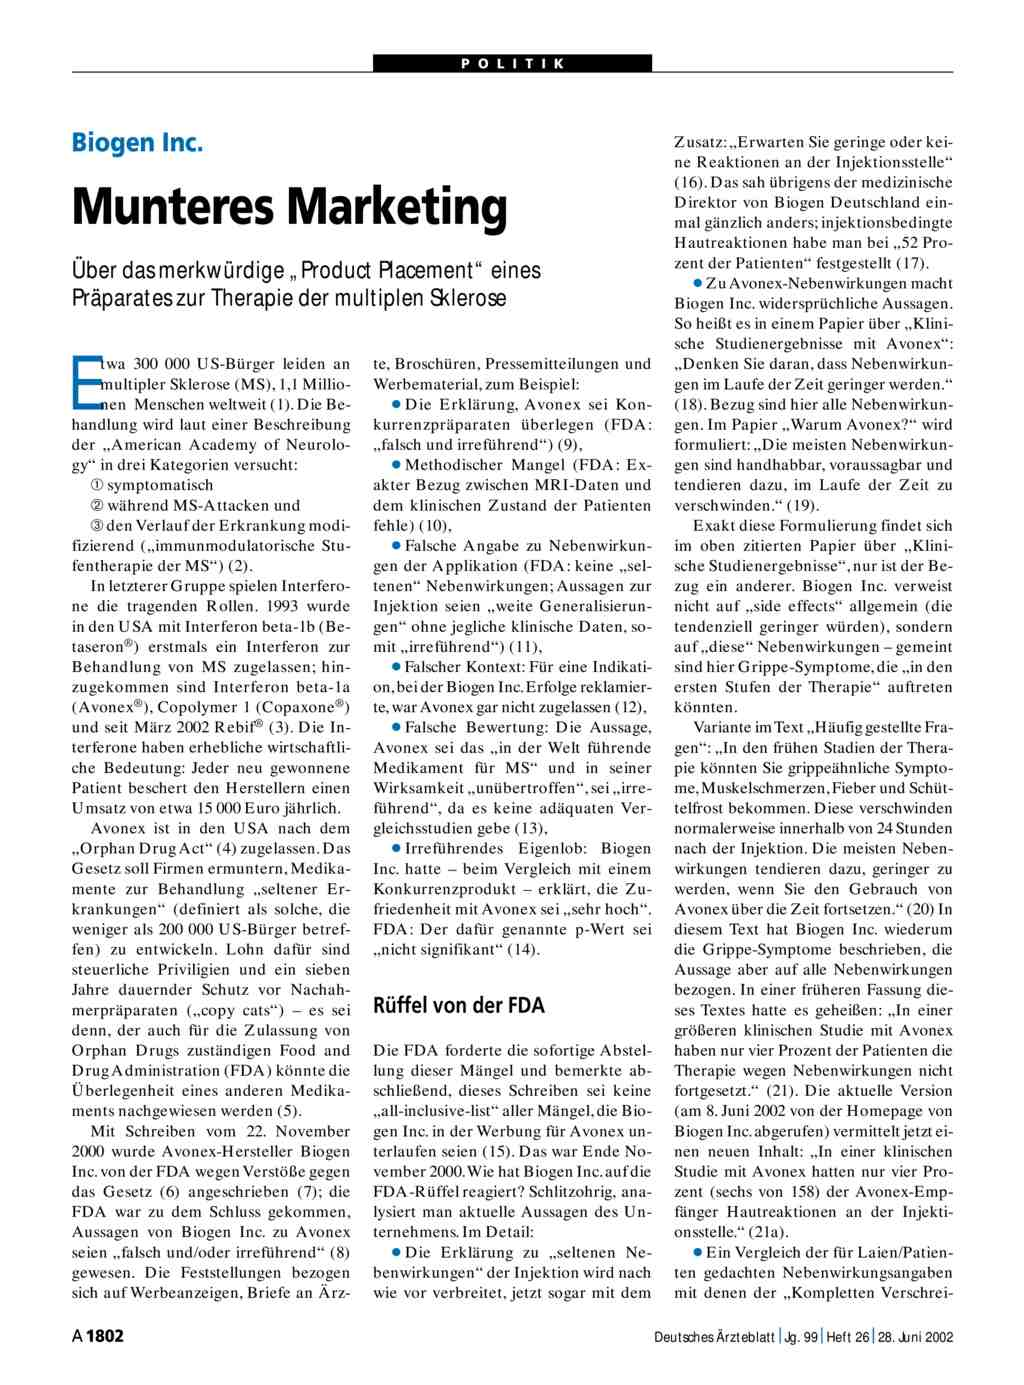 Biogen Inc.: Munteres Marketing